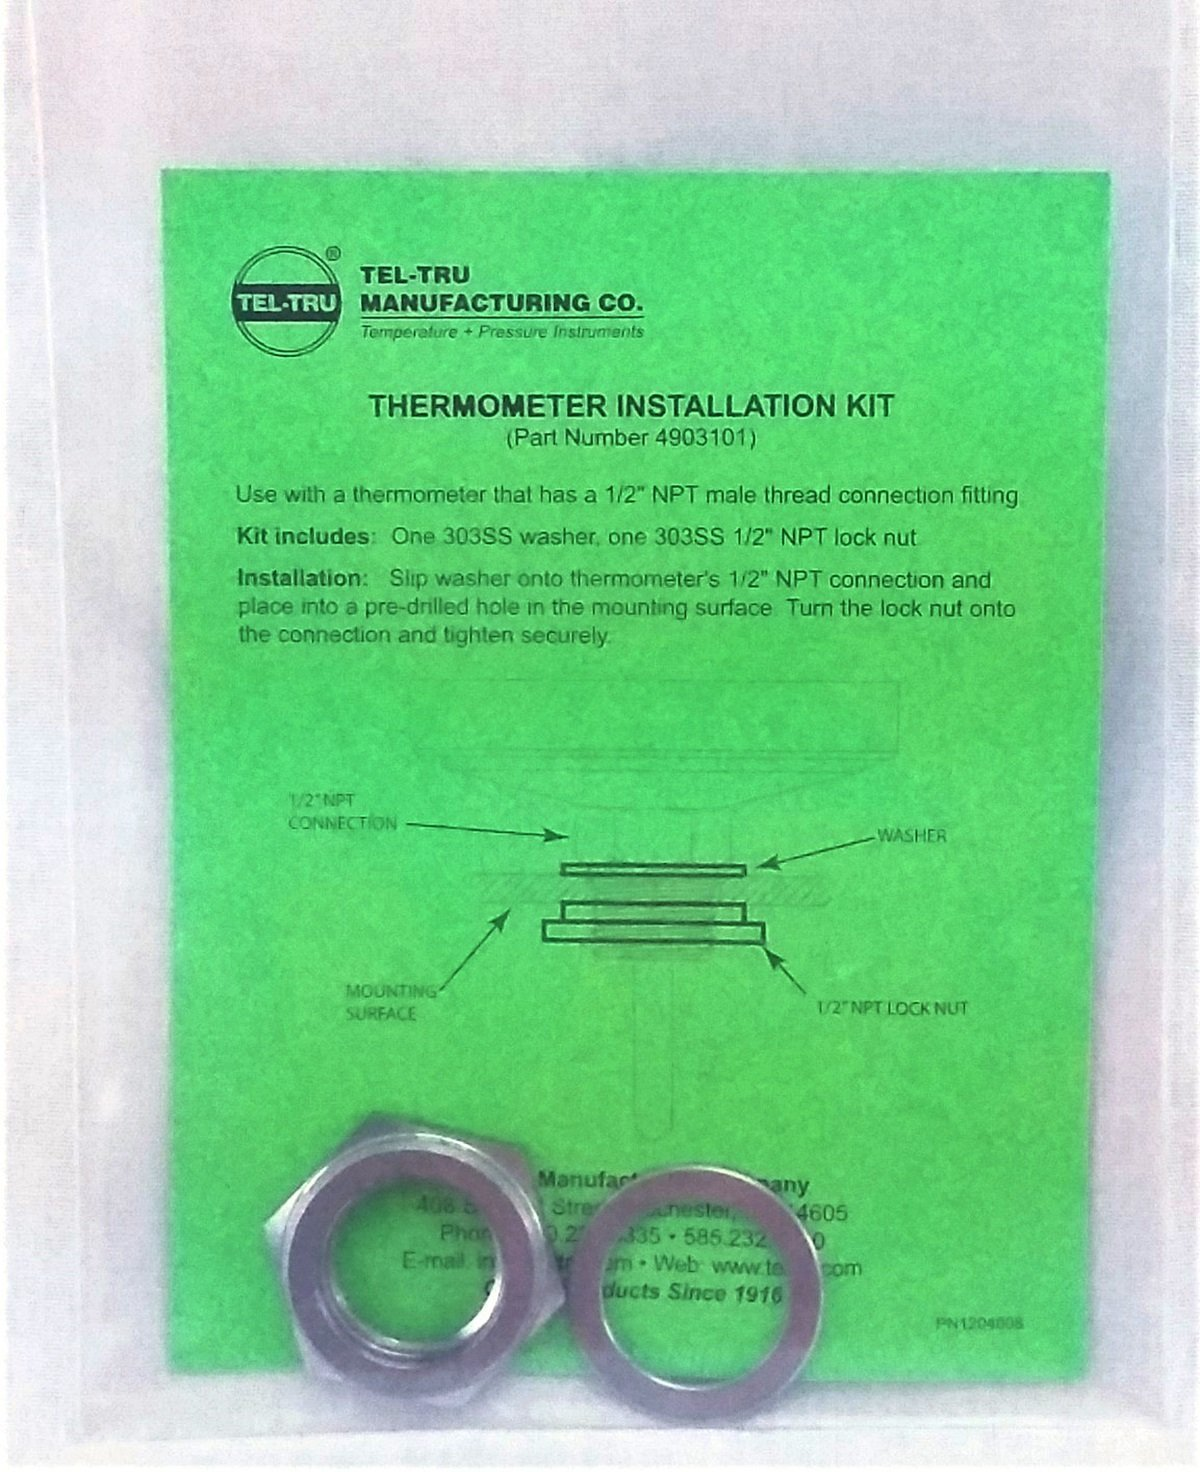 Tel-Tru Installation Kit package